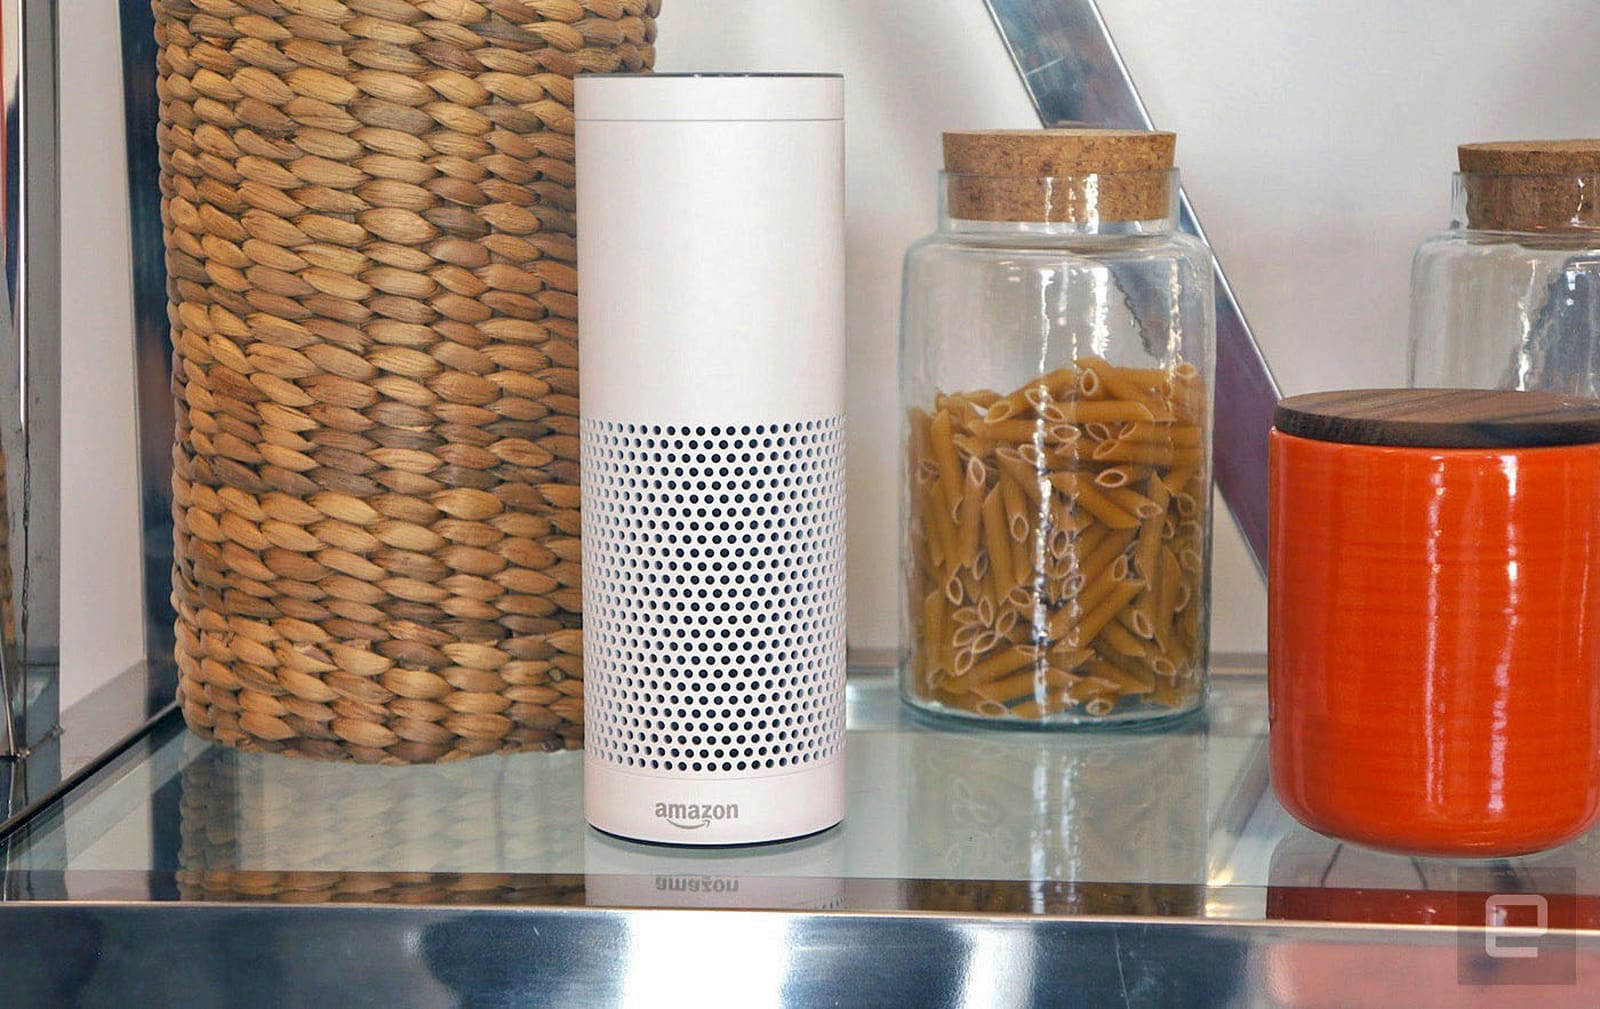 Amazon's Alexa ecosystem is exploding, for better and worse